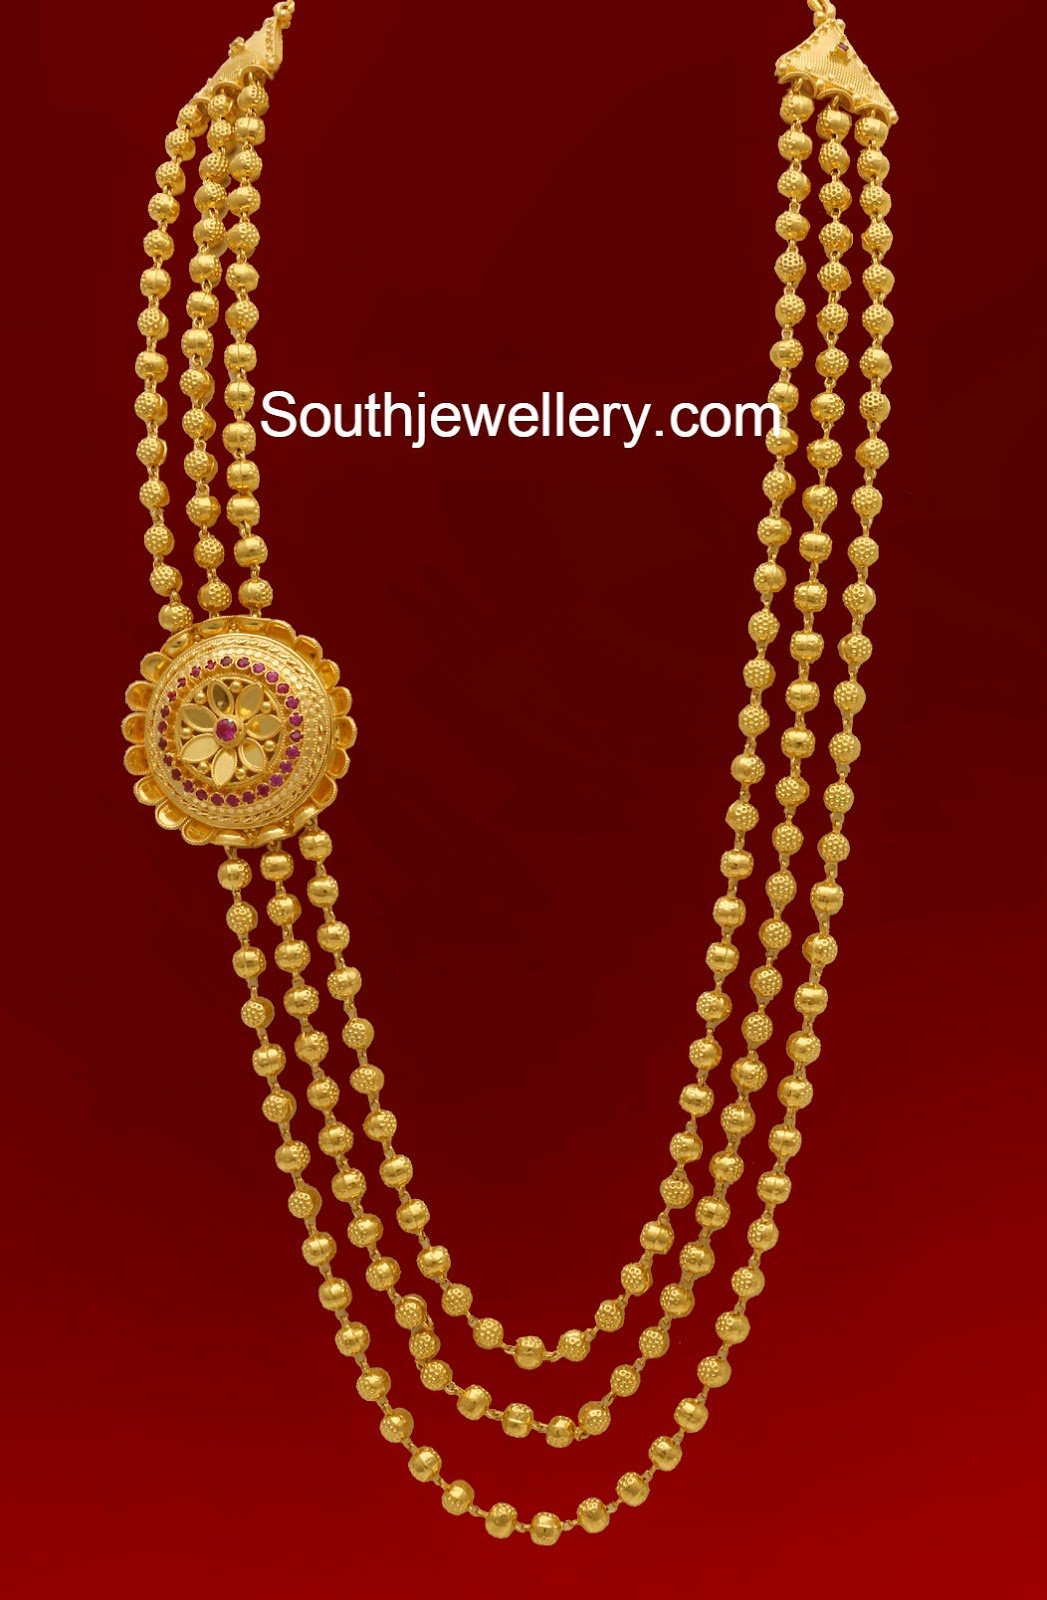 Gold Long Chain New Designs